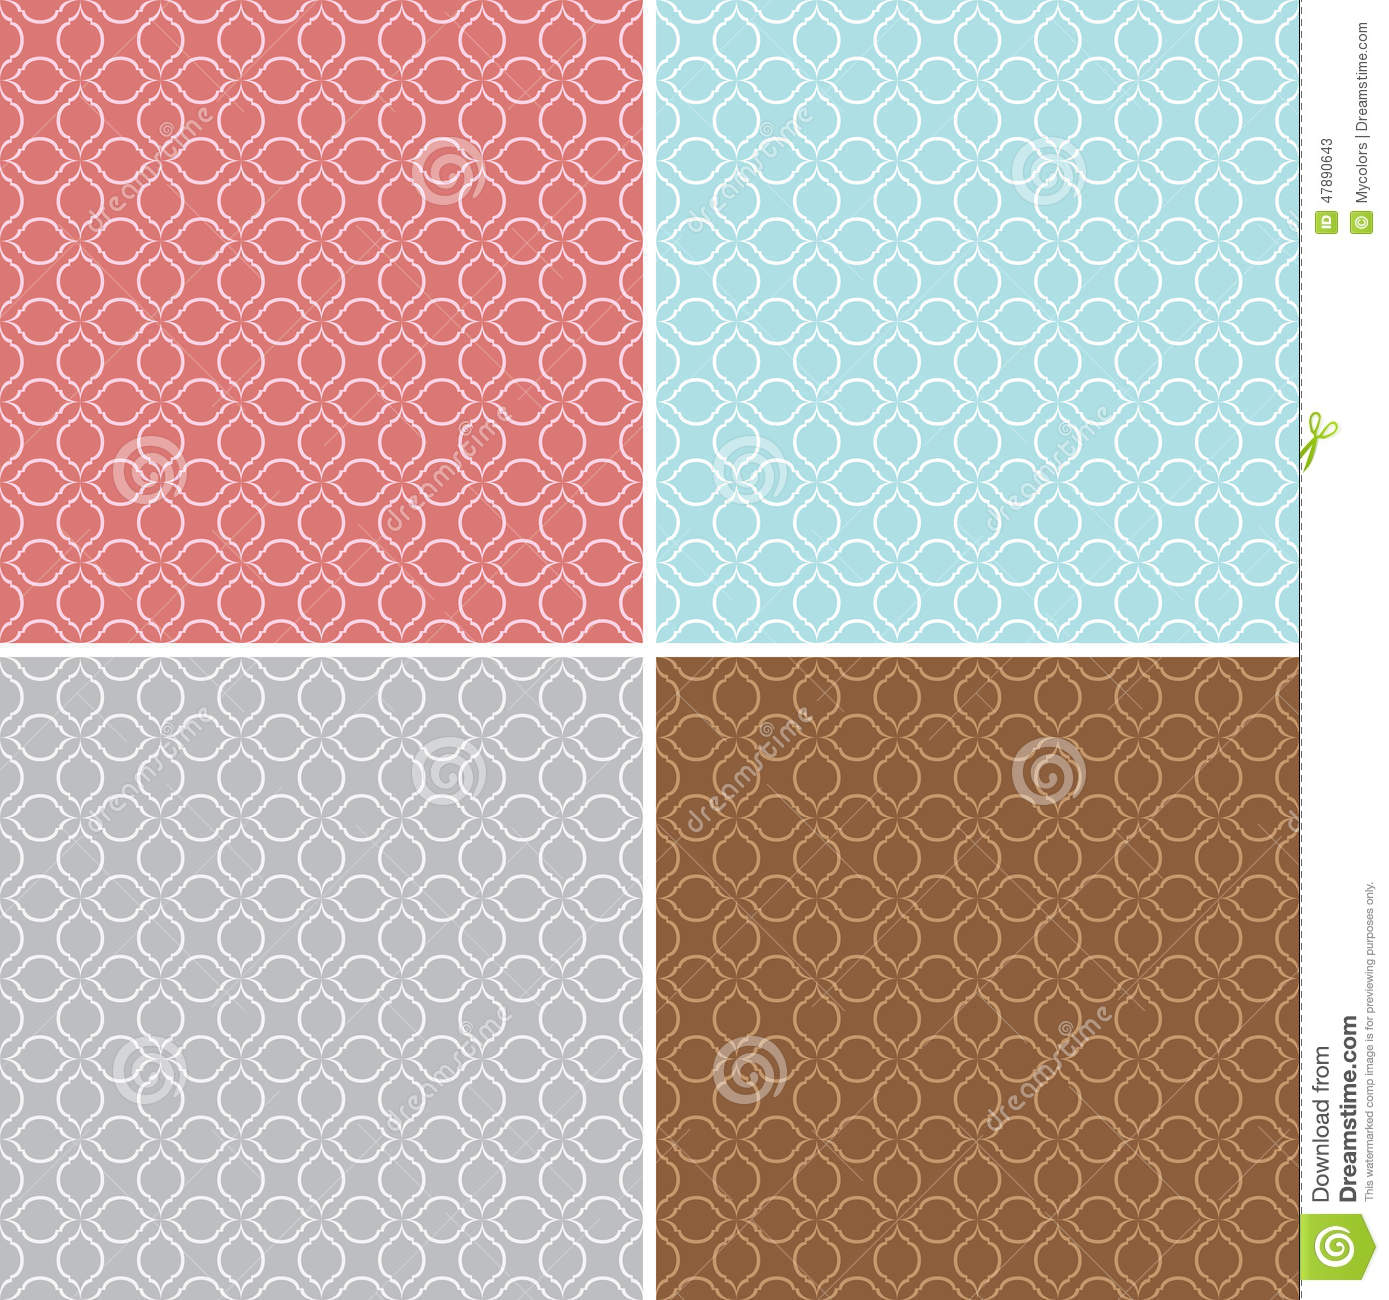 Geometric seamless patterns - vector backgrounds